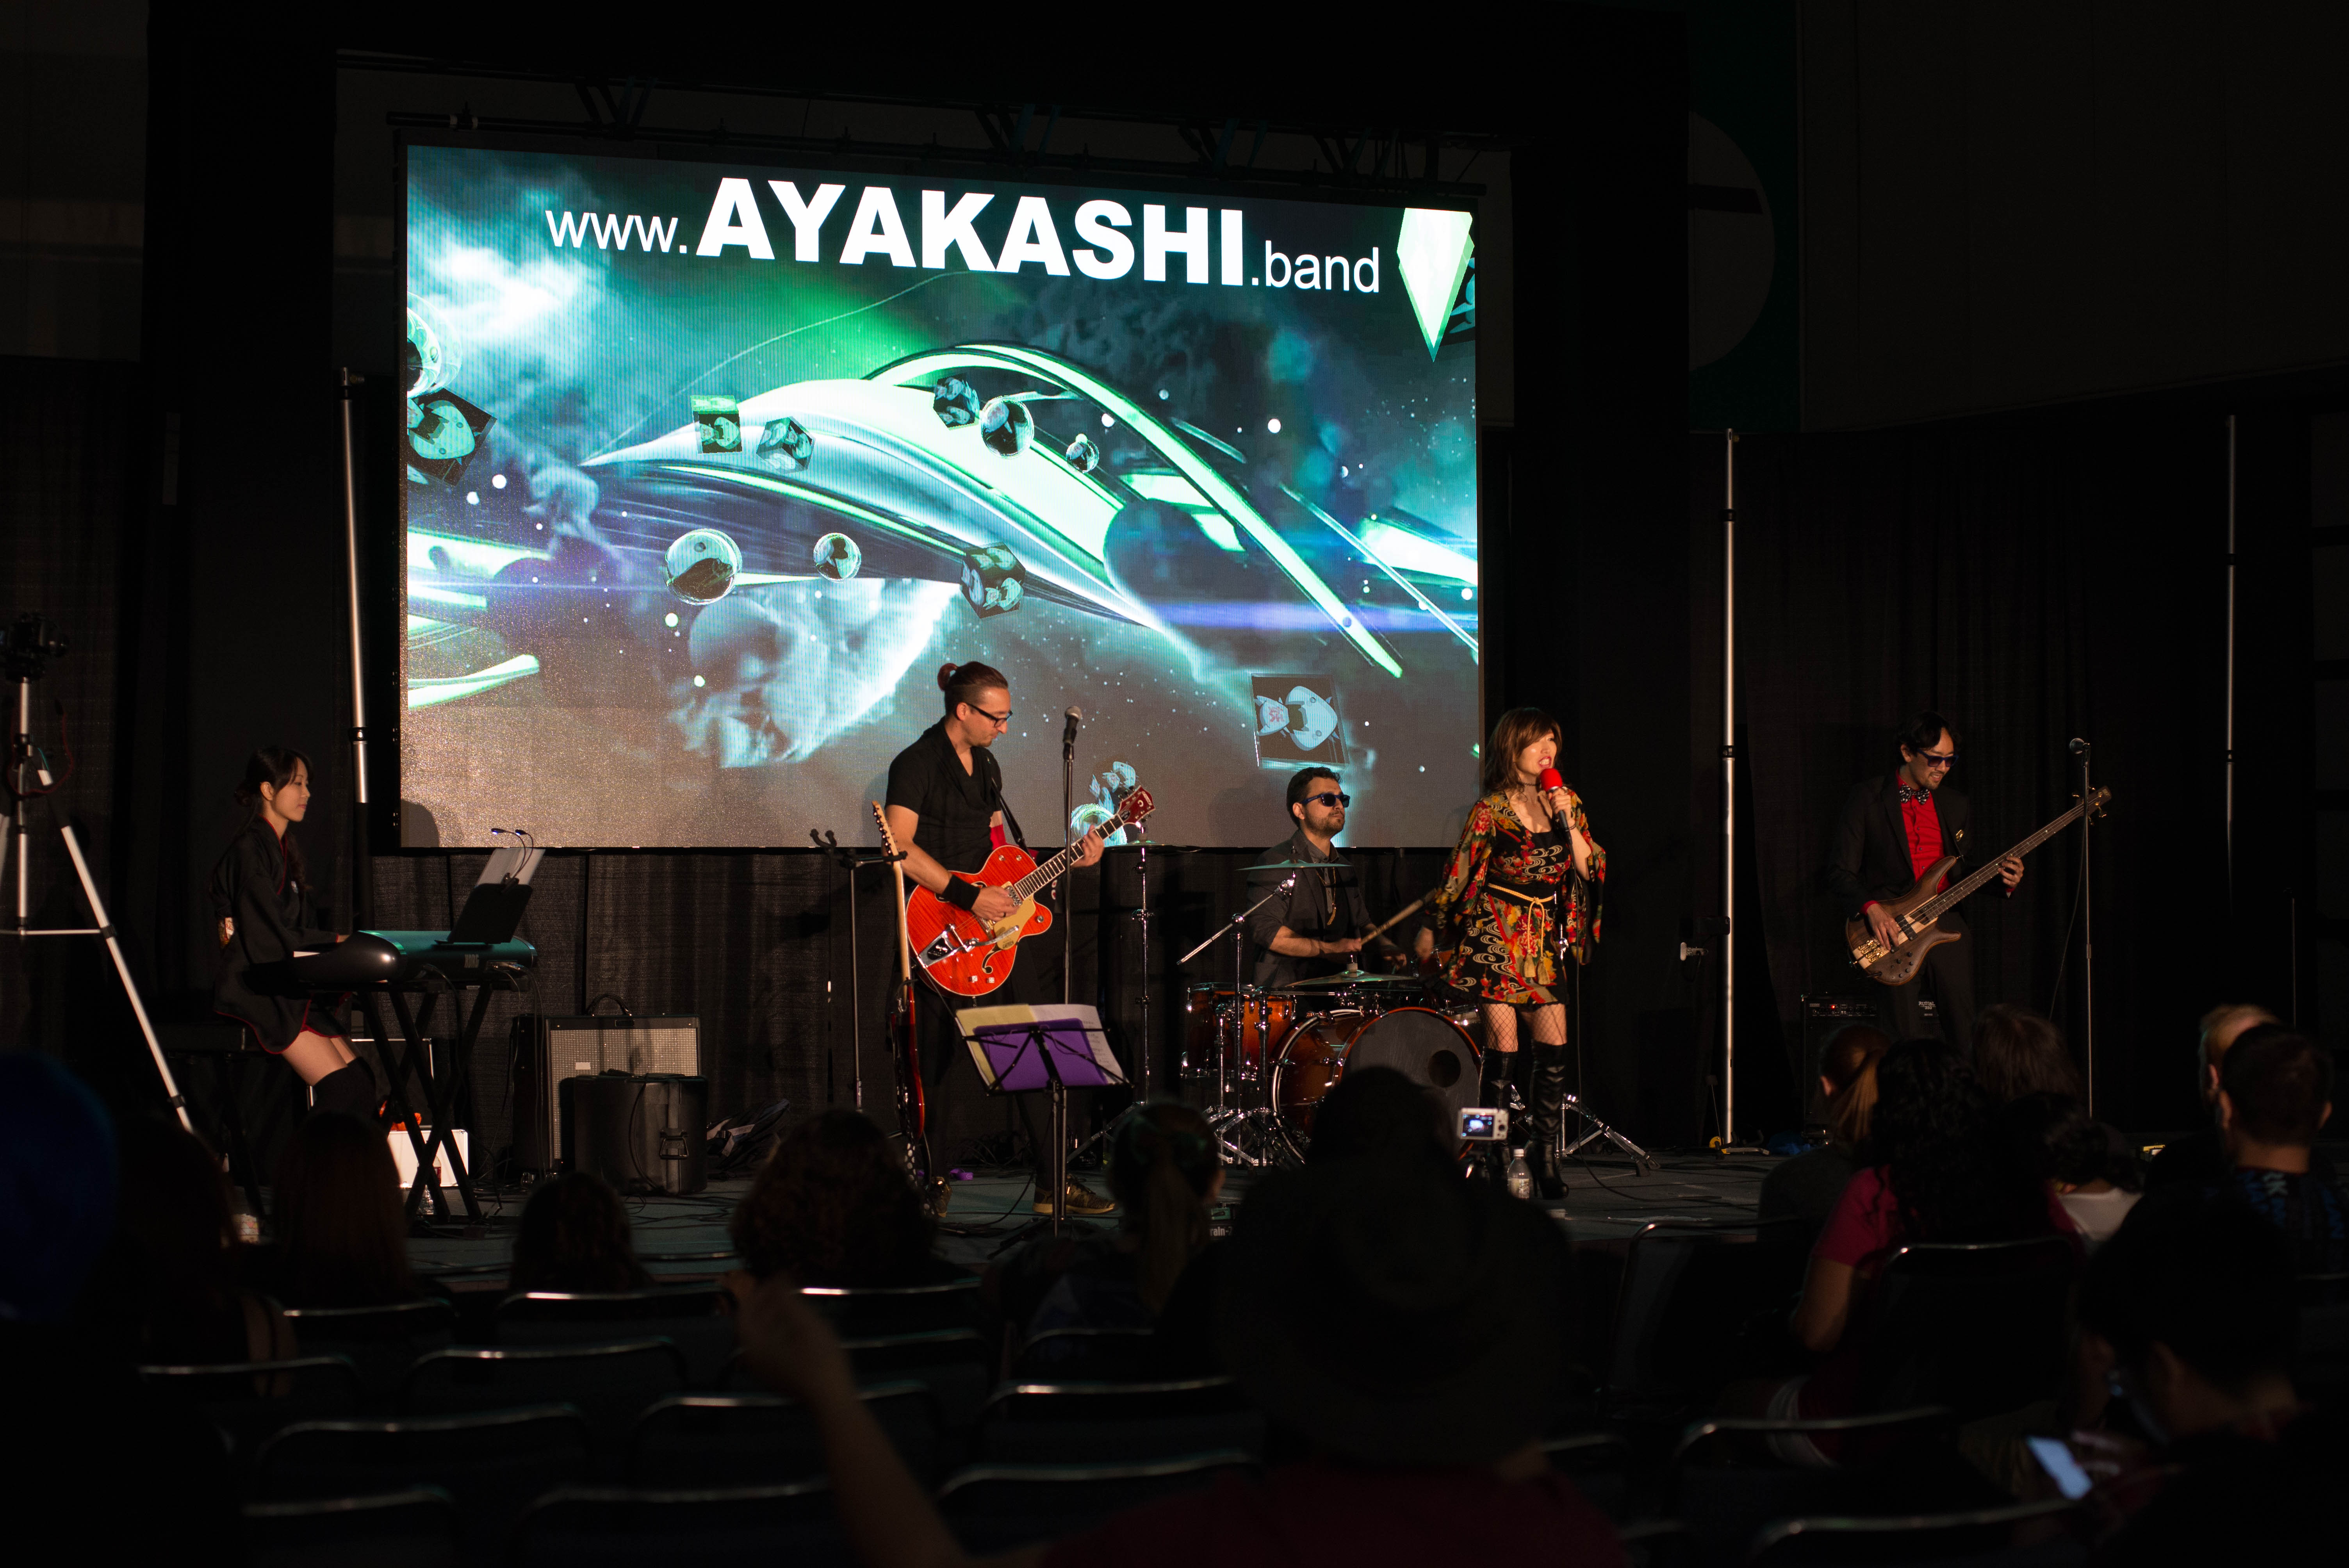 apply to perform on the community stage at ax 2018